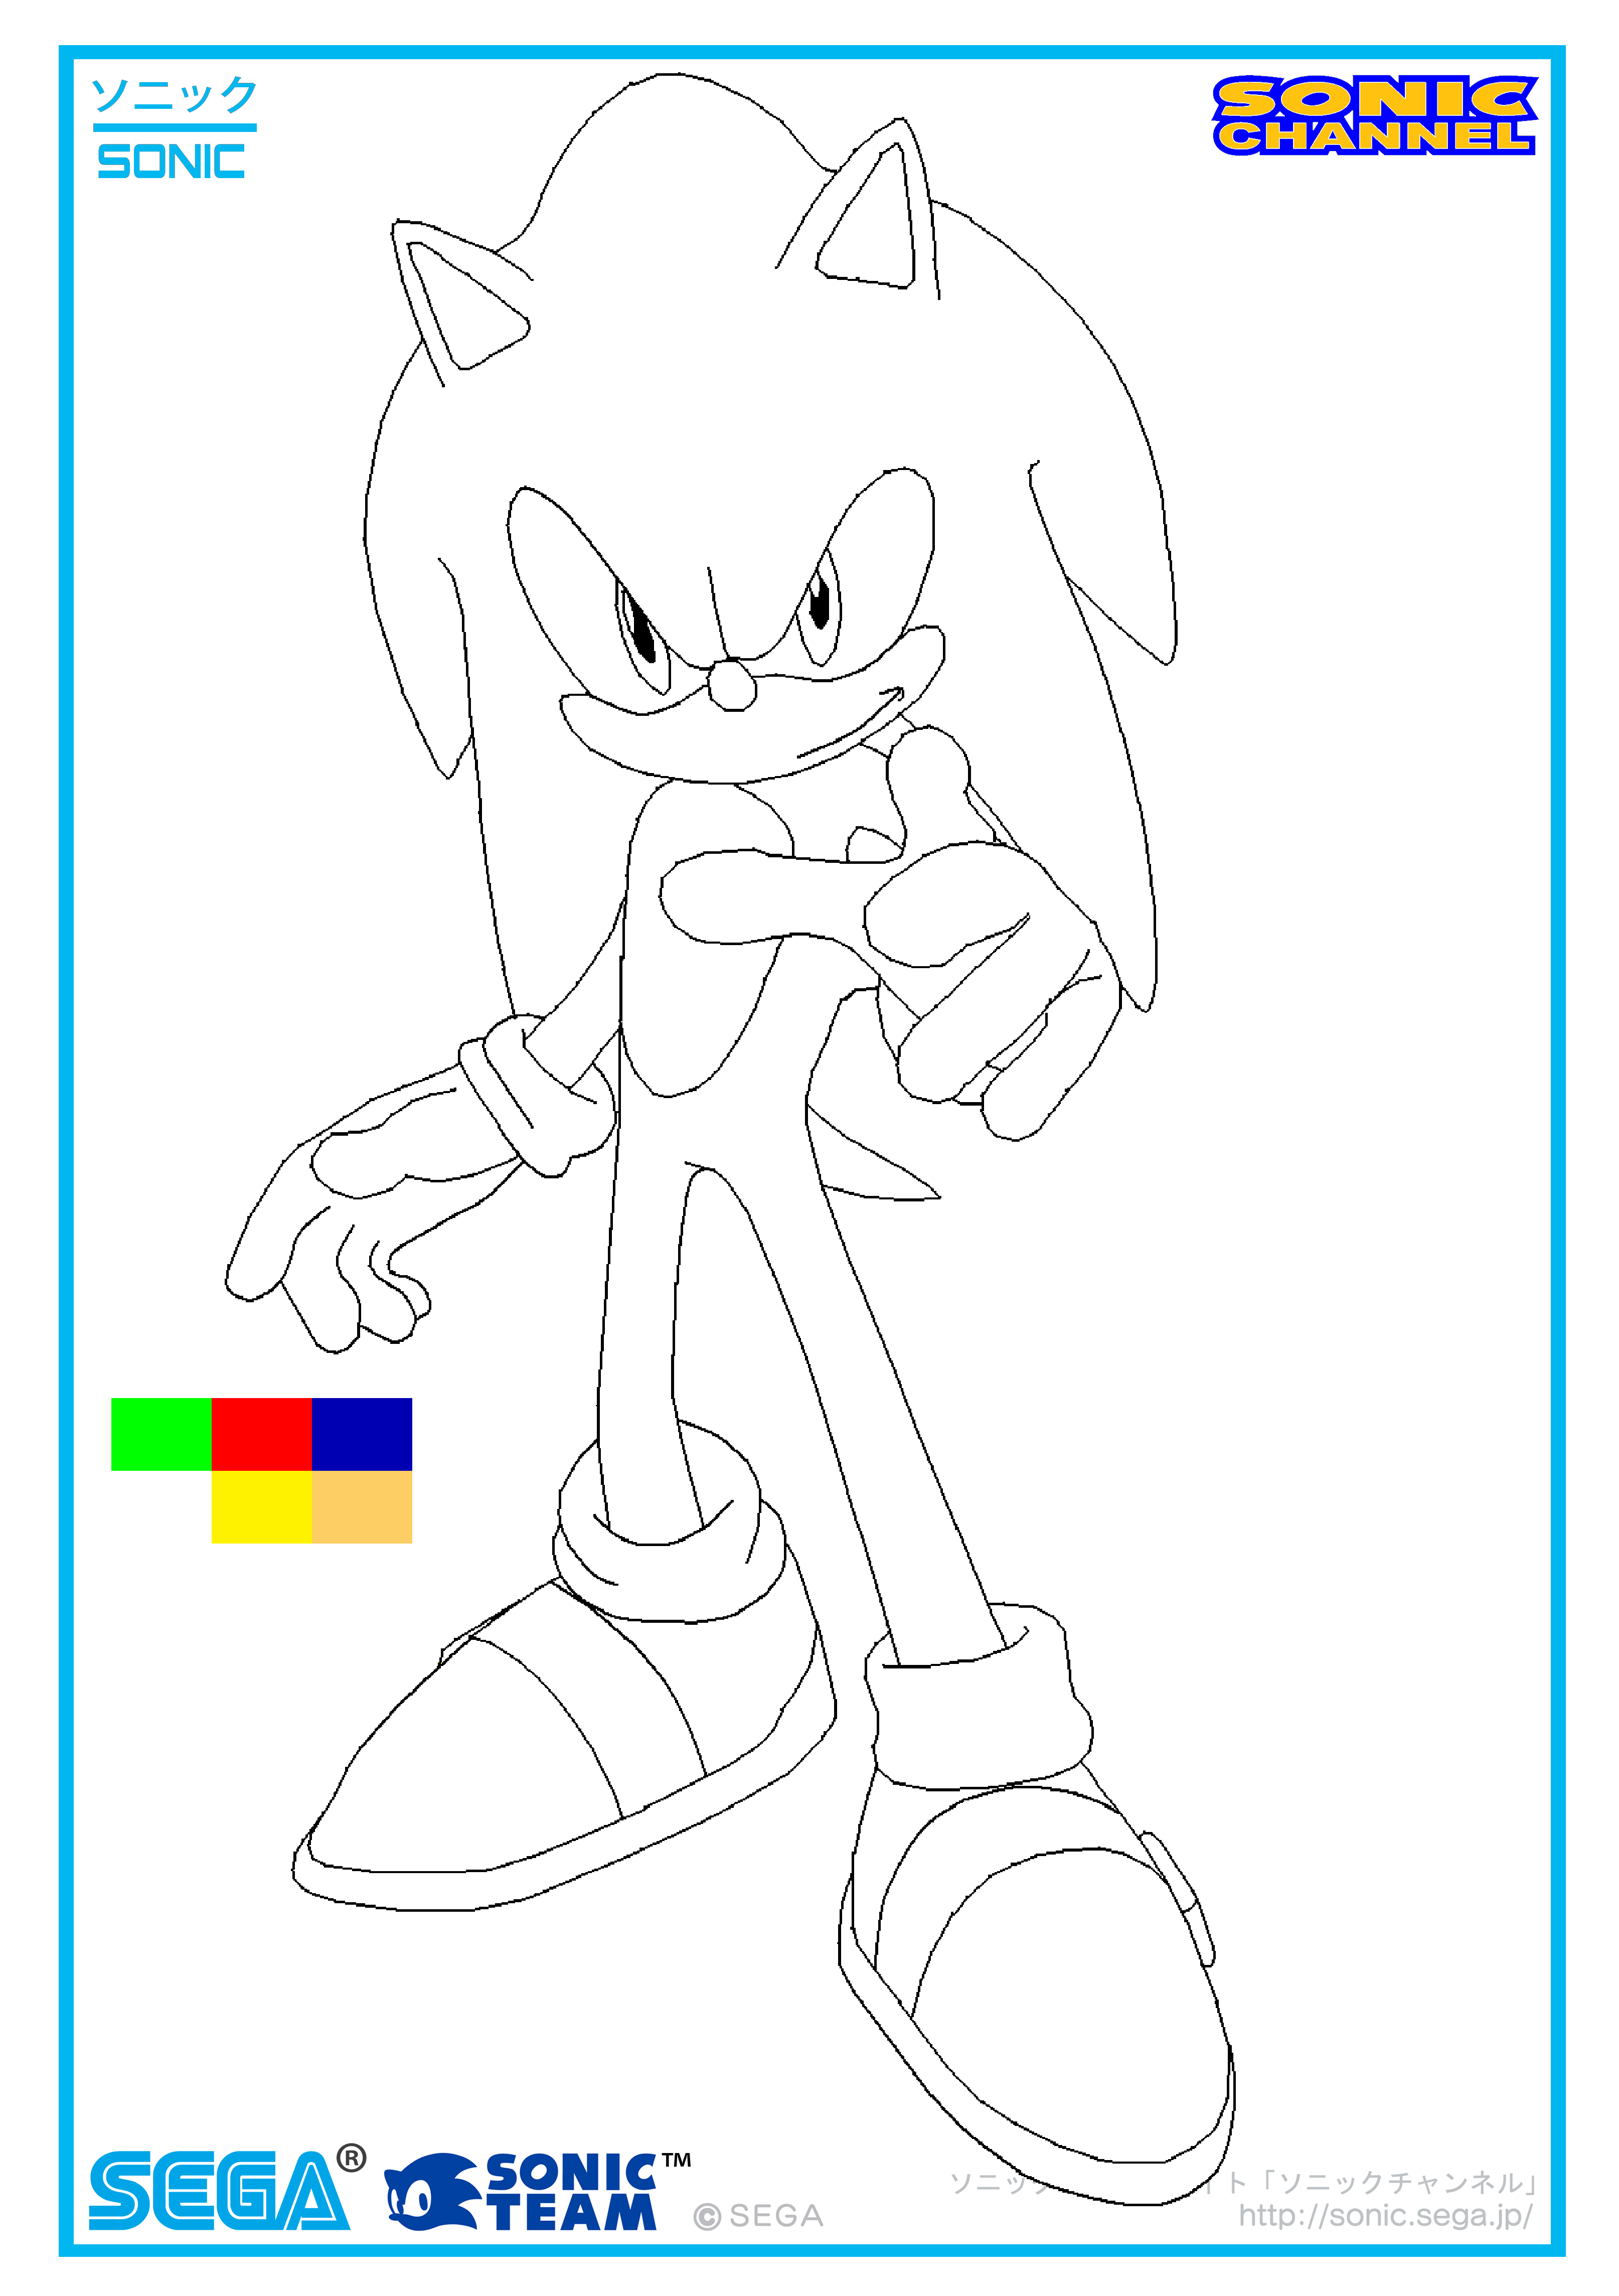 yellow sonic coloring pages atkinson flowers - Classic Super Sonic Coloring Pages